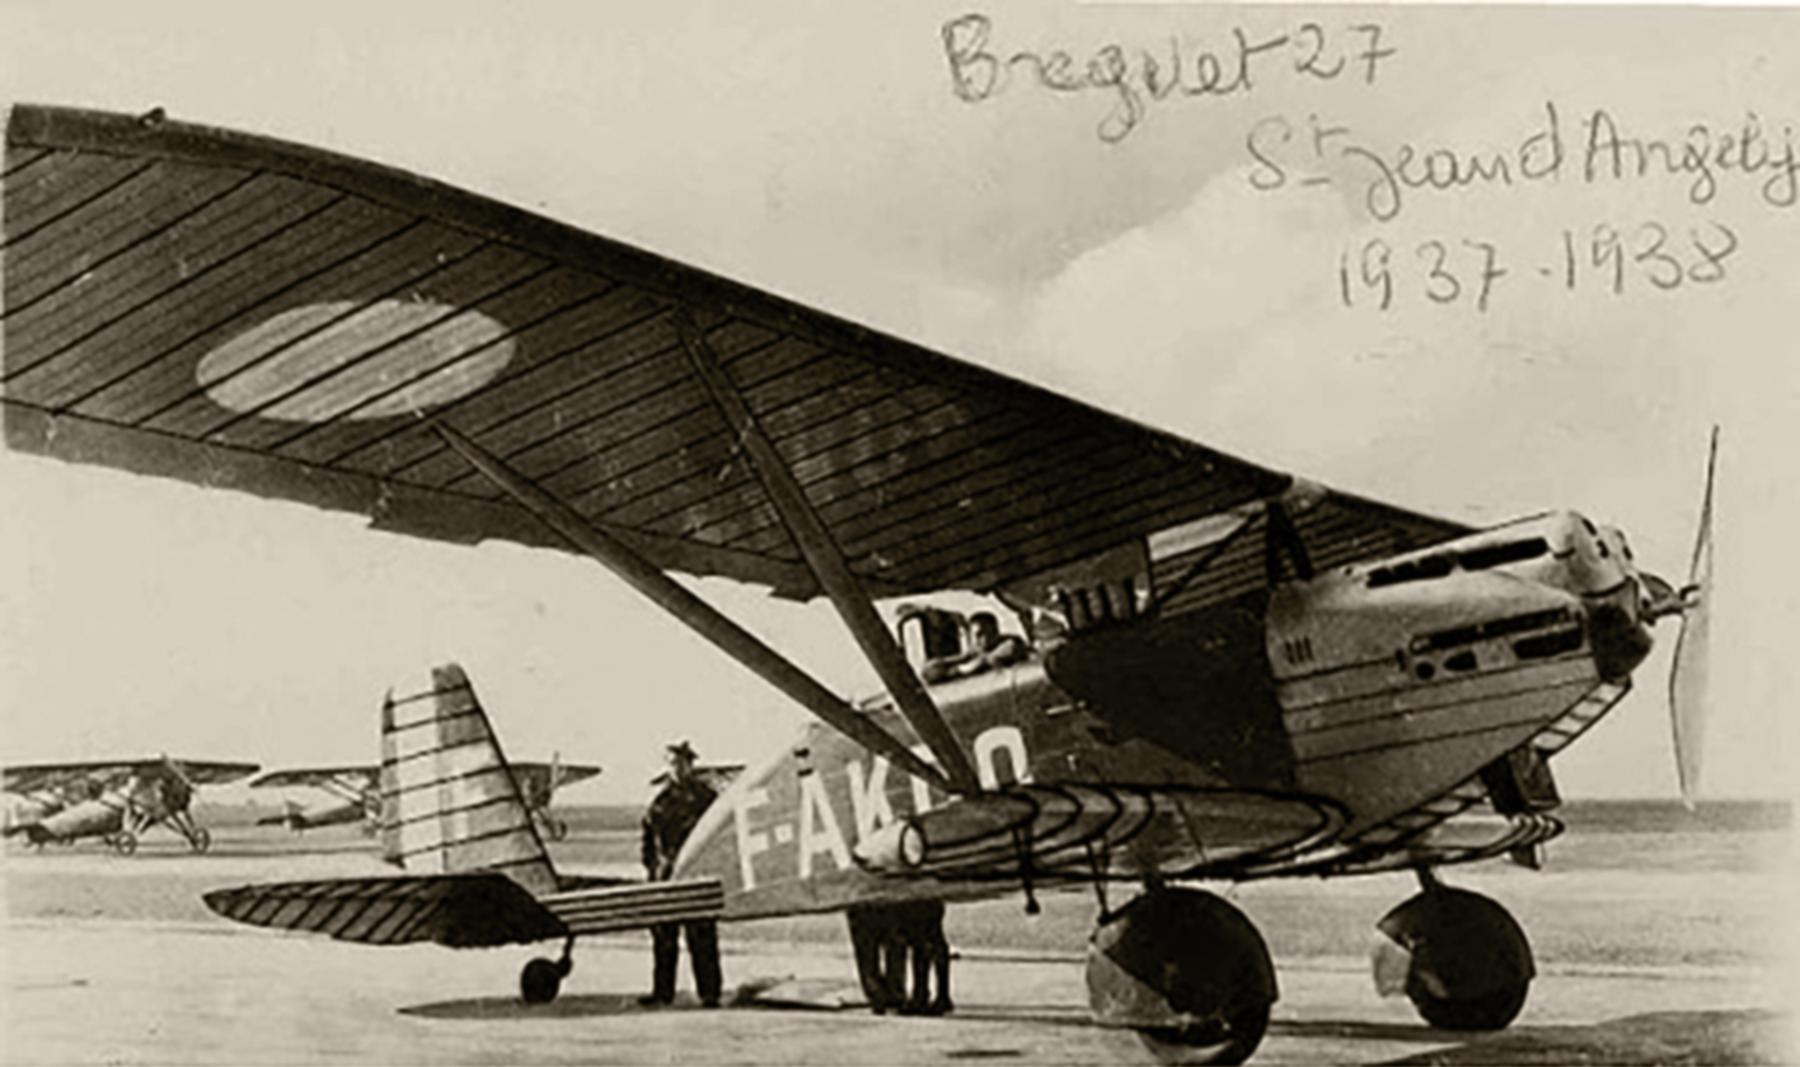 French Airforce Breguet 270 F AKDQ at Saint Jean Pied de Port France 1937 38 ebay 01